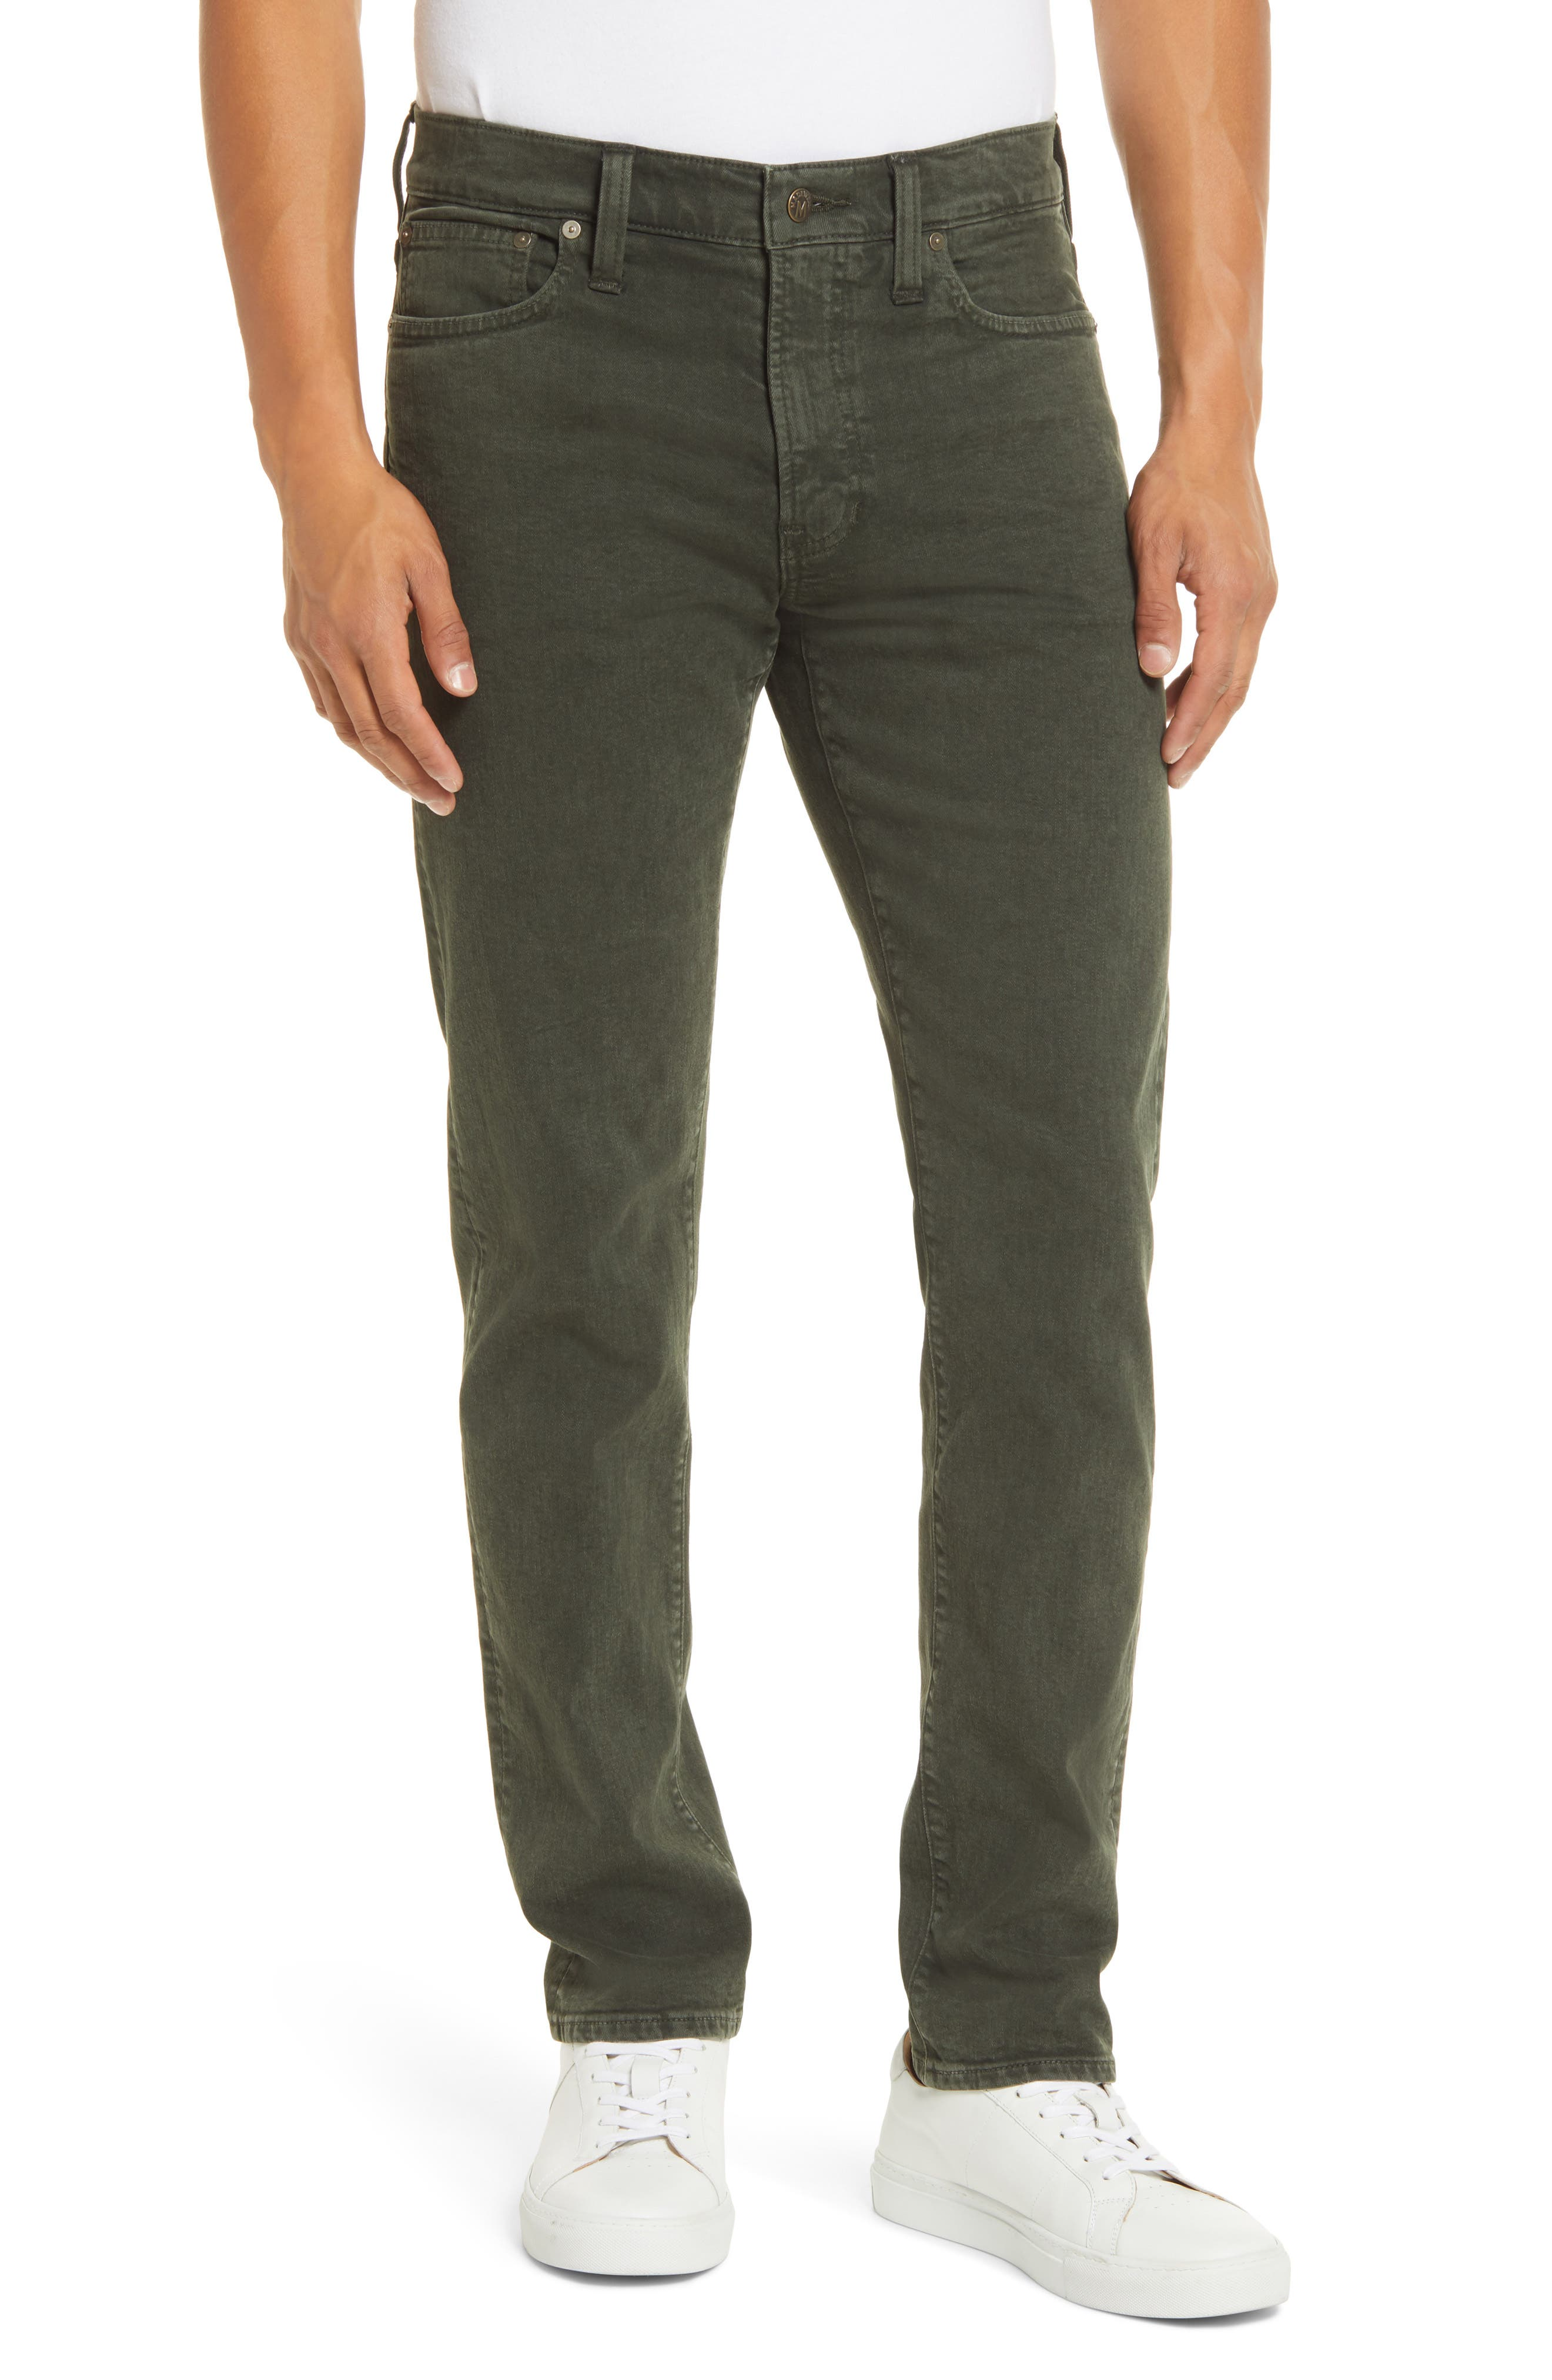 Image of Madewell Garment Dyed Slim Everyday Flex Jeans